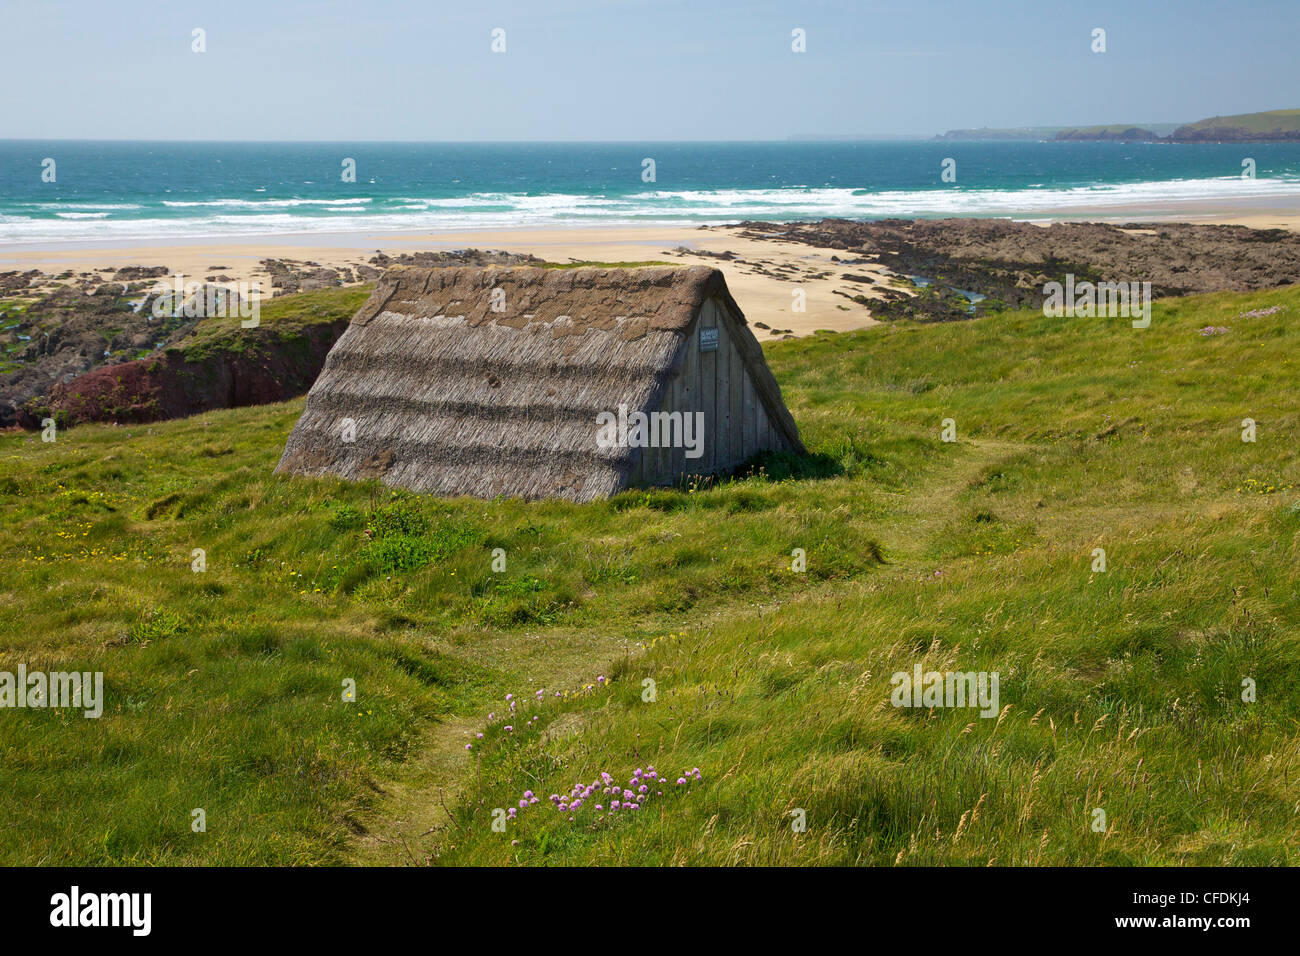 Seaweed drying hut, Freshwater West beach, Pembrokeshire National Park, Wales, United Kingdom, Europe - Stock Image